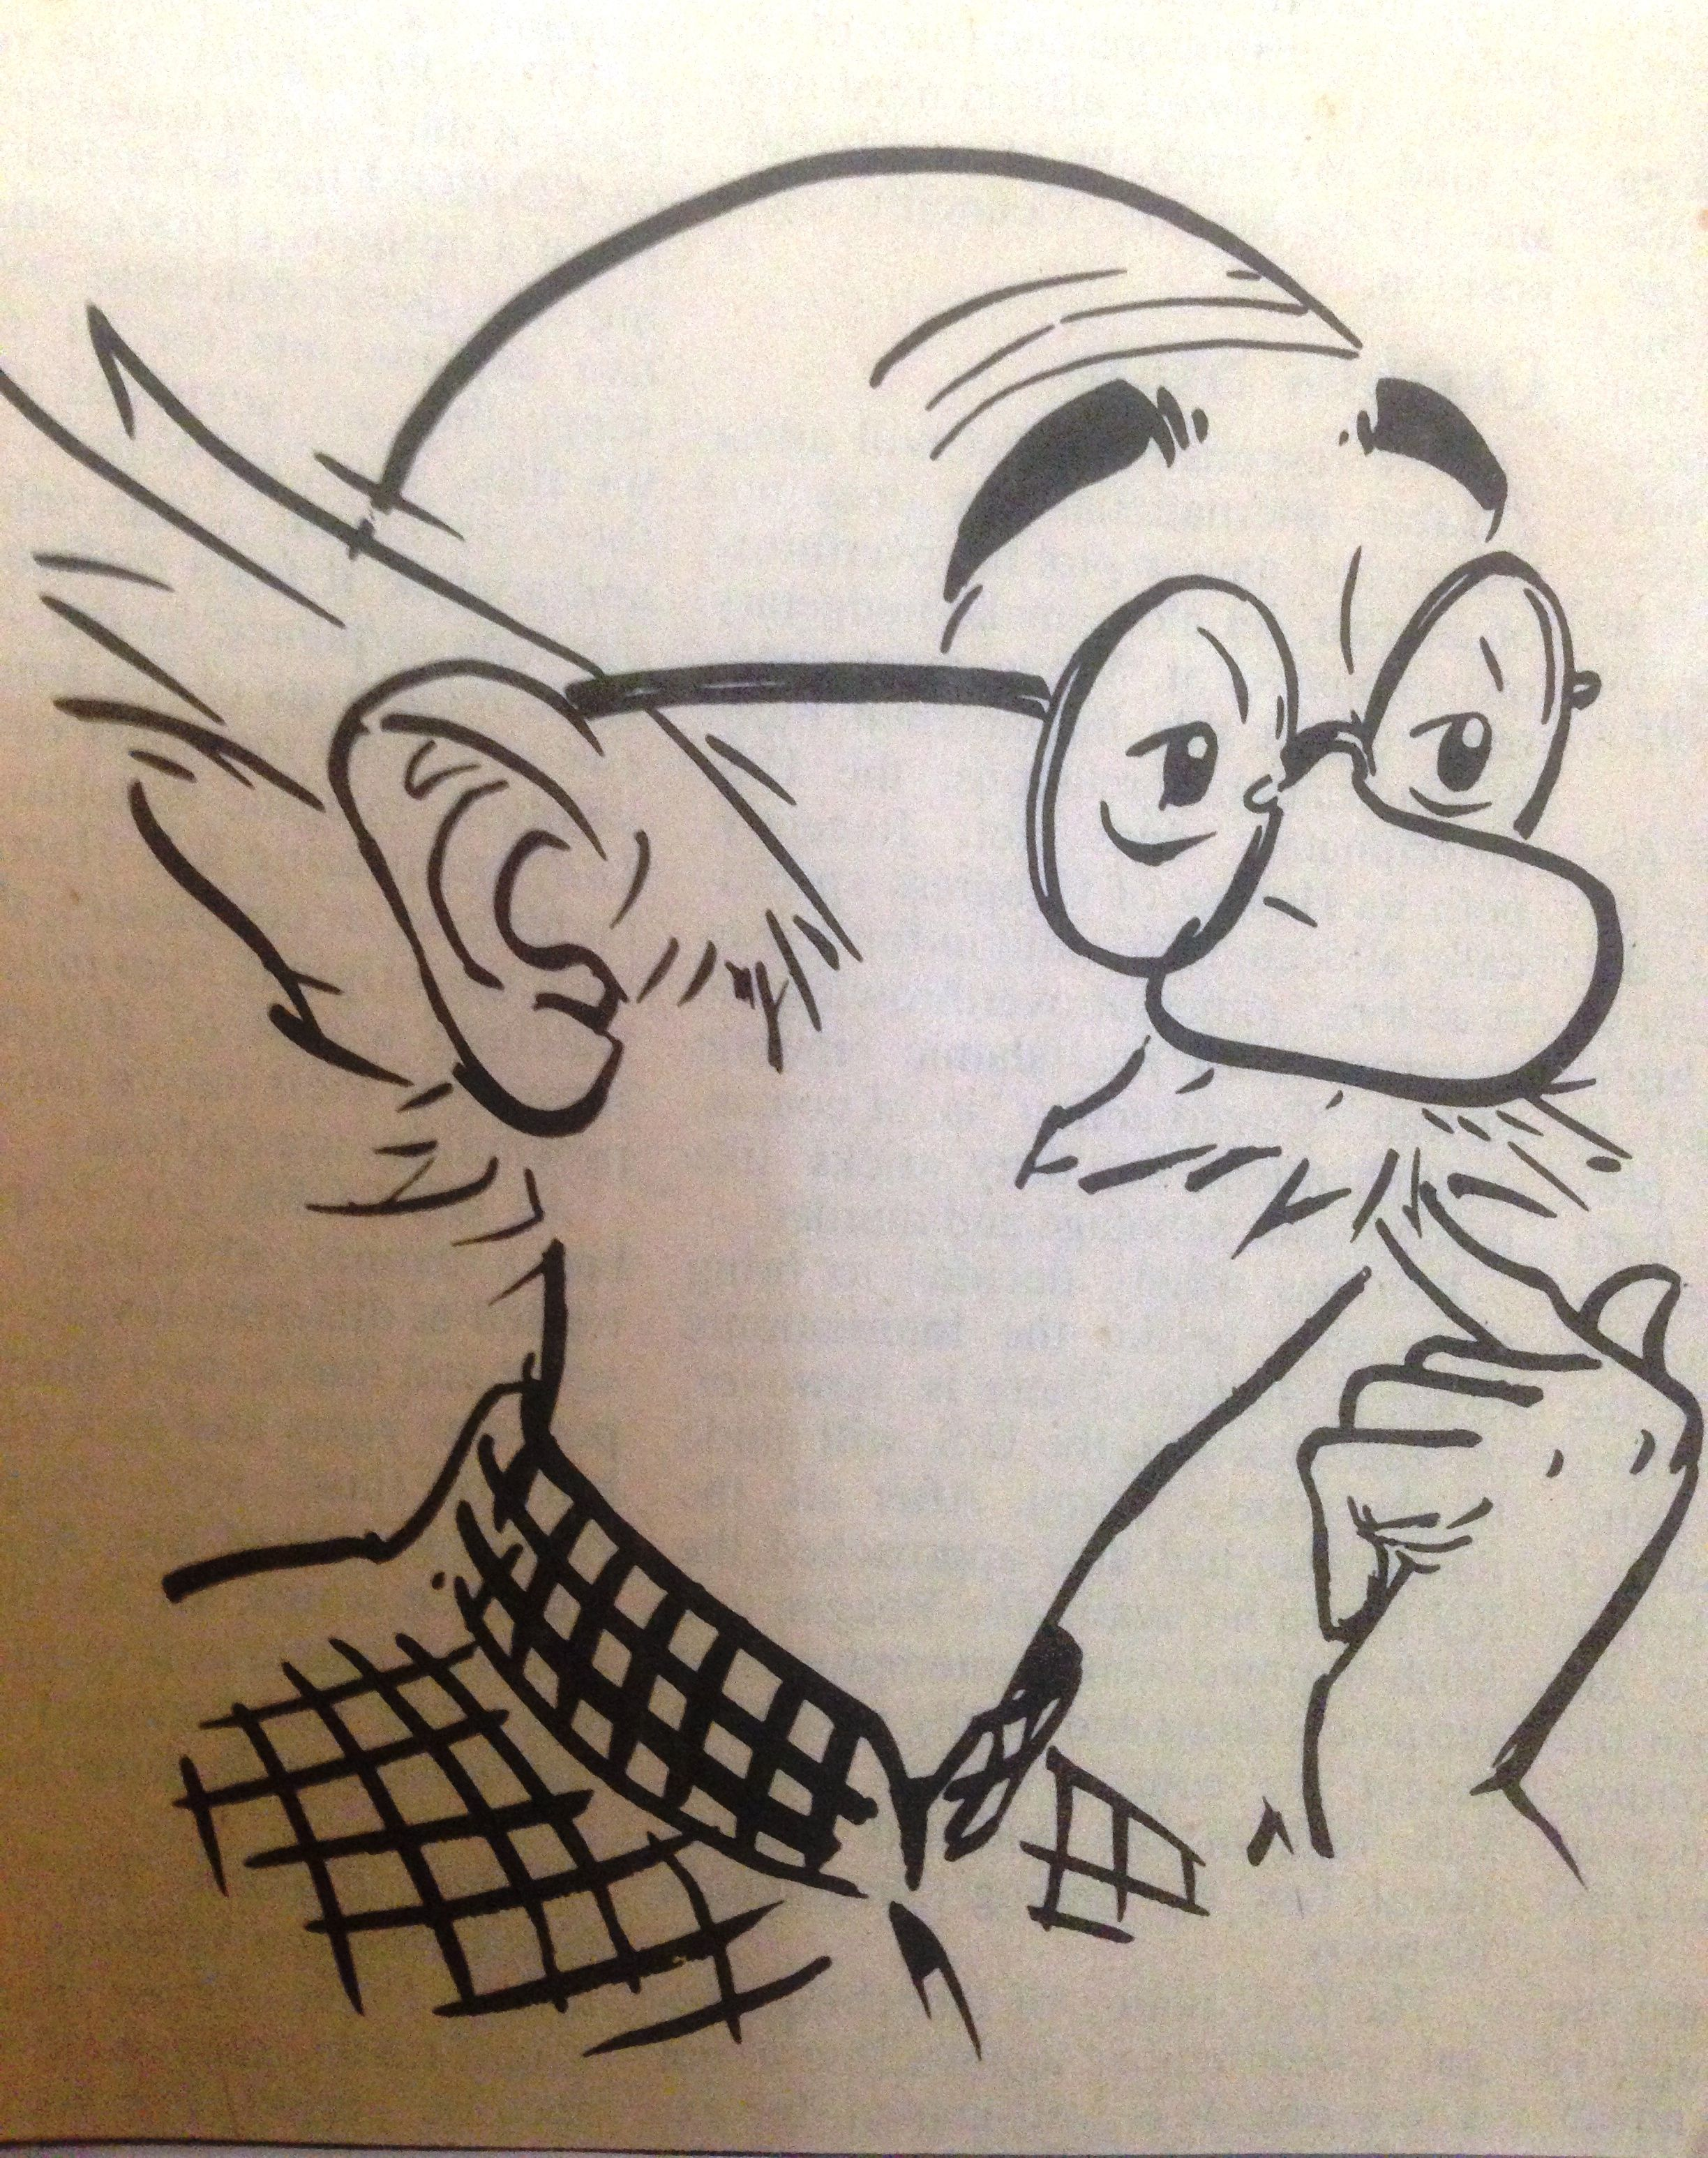 Common Man By R K Laxman Caricature Sketch Caricature Drawing